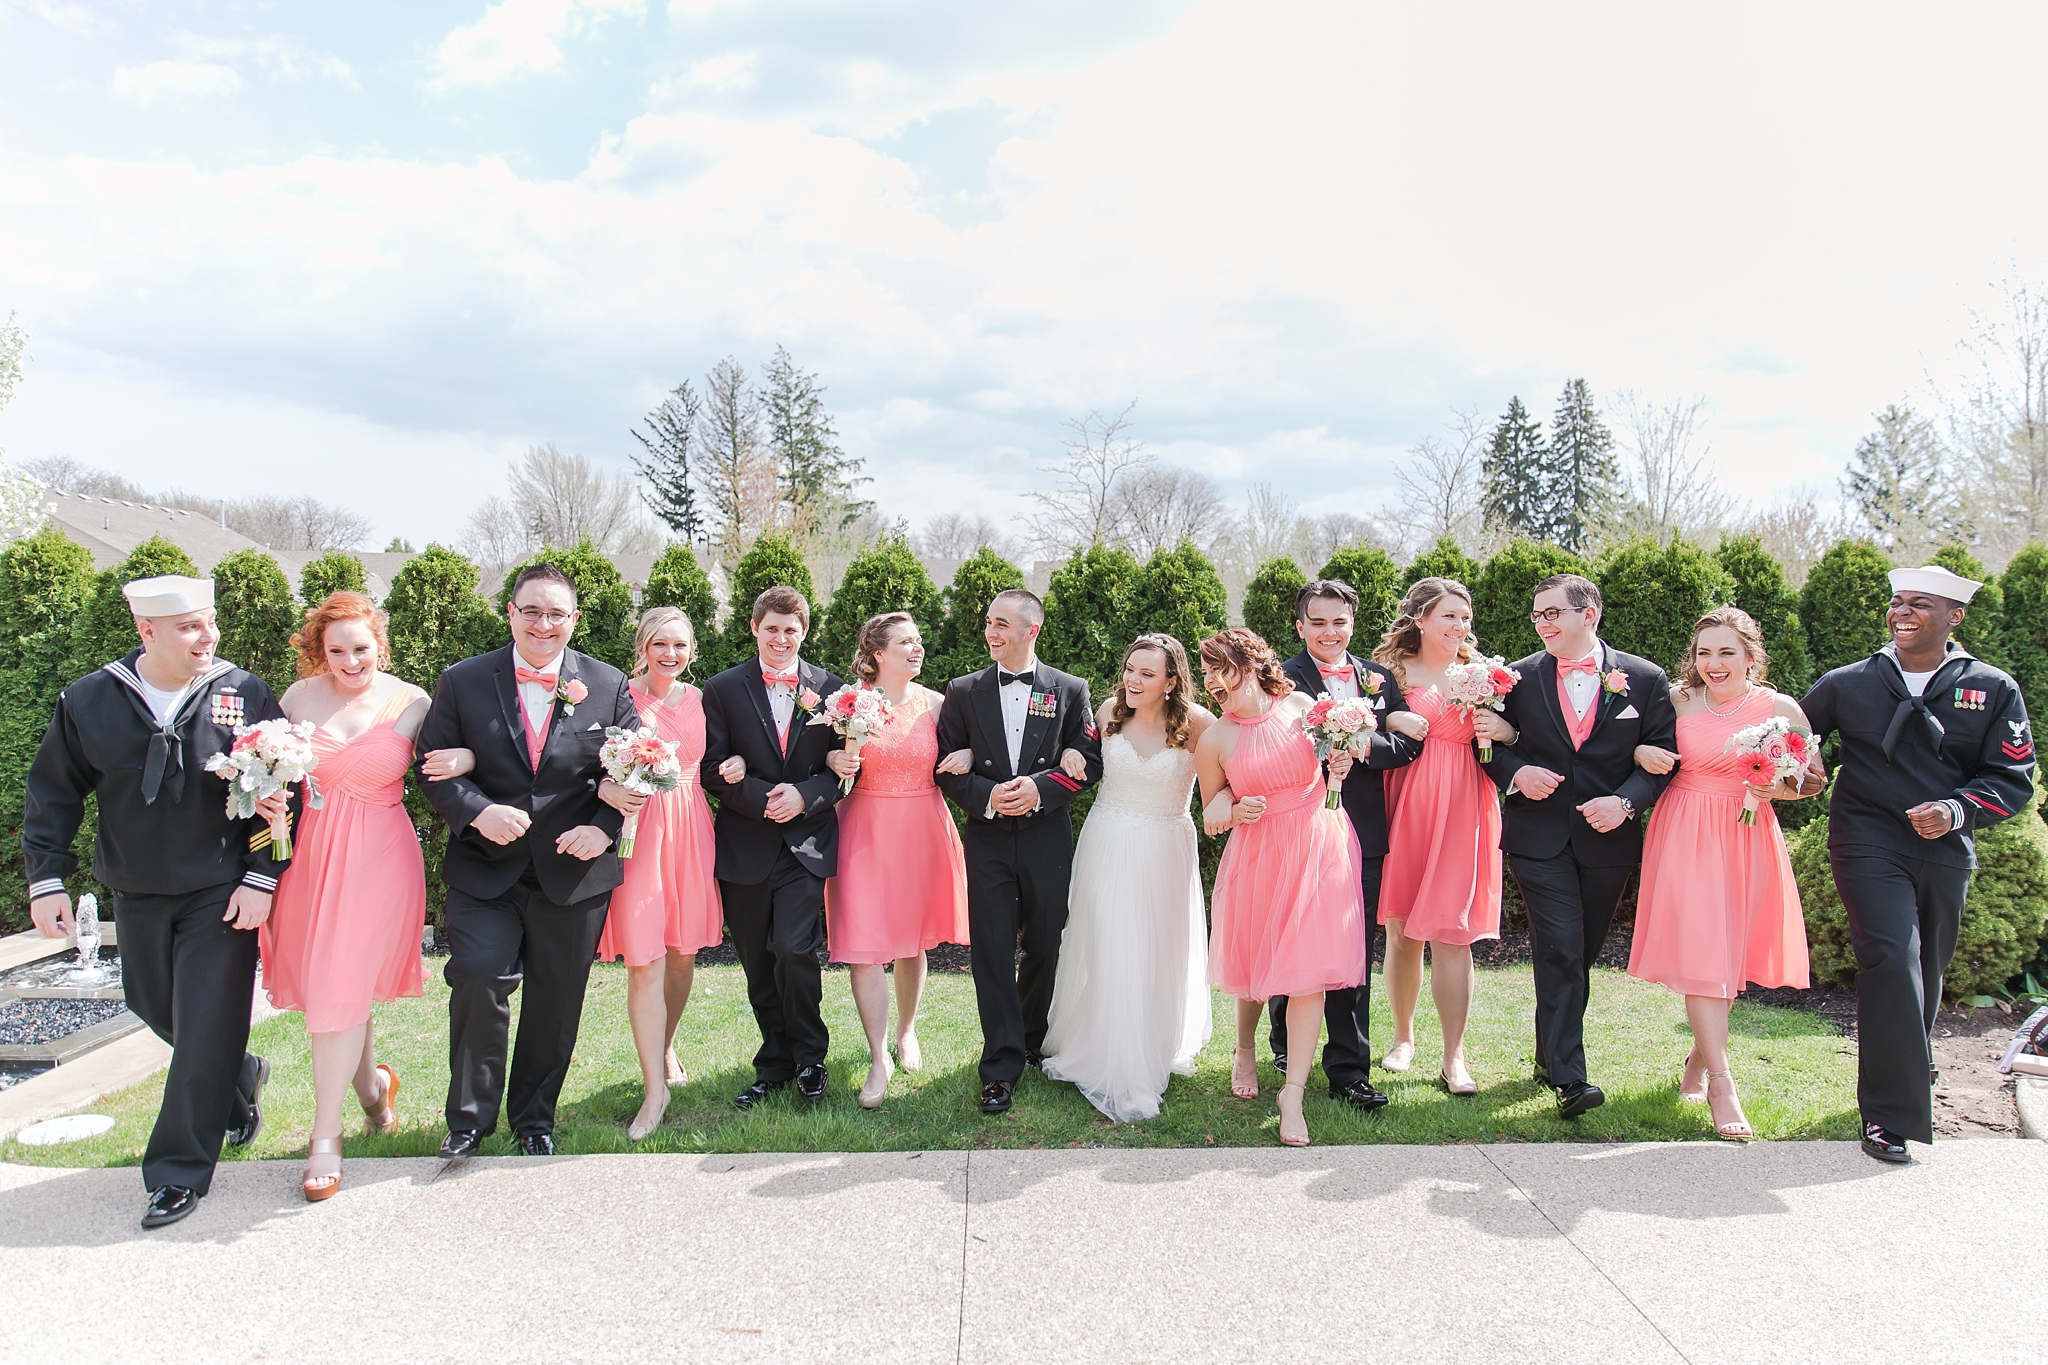 romantic-artful-candid-wedding-photos-in-st-clair-shores-at-the-white-house-wedding-chapel-by-courtney-carolyn-photography_0037.jpg